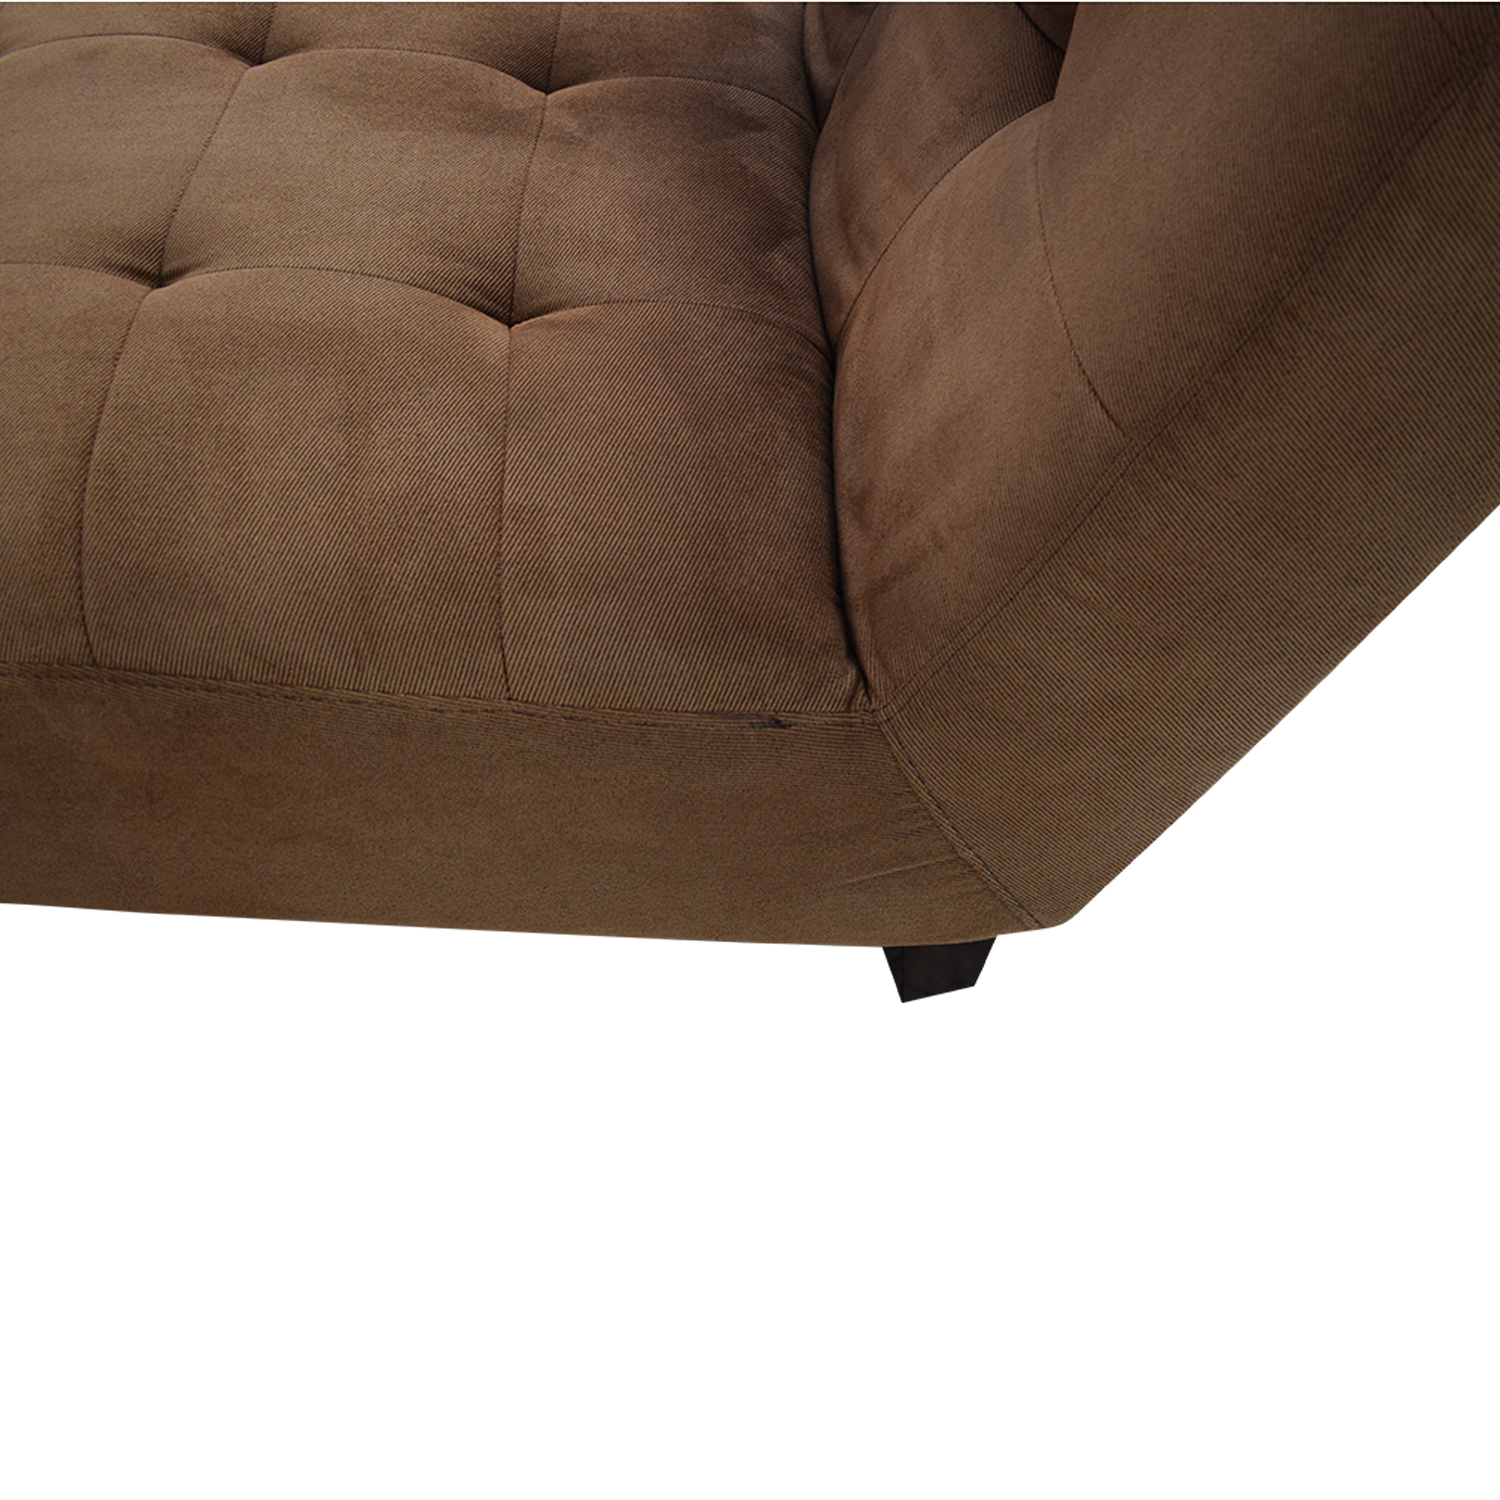 Macy's Macy's Arched Chaise Lounge Sofas